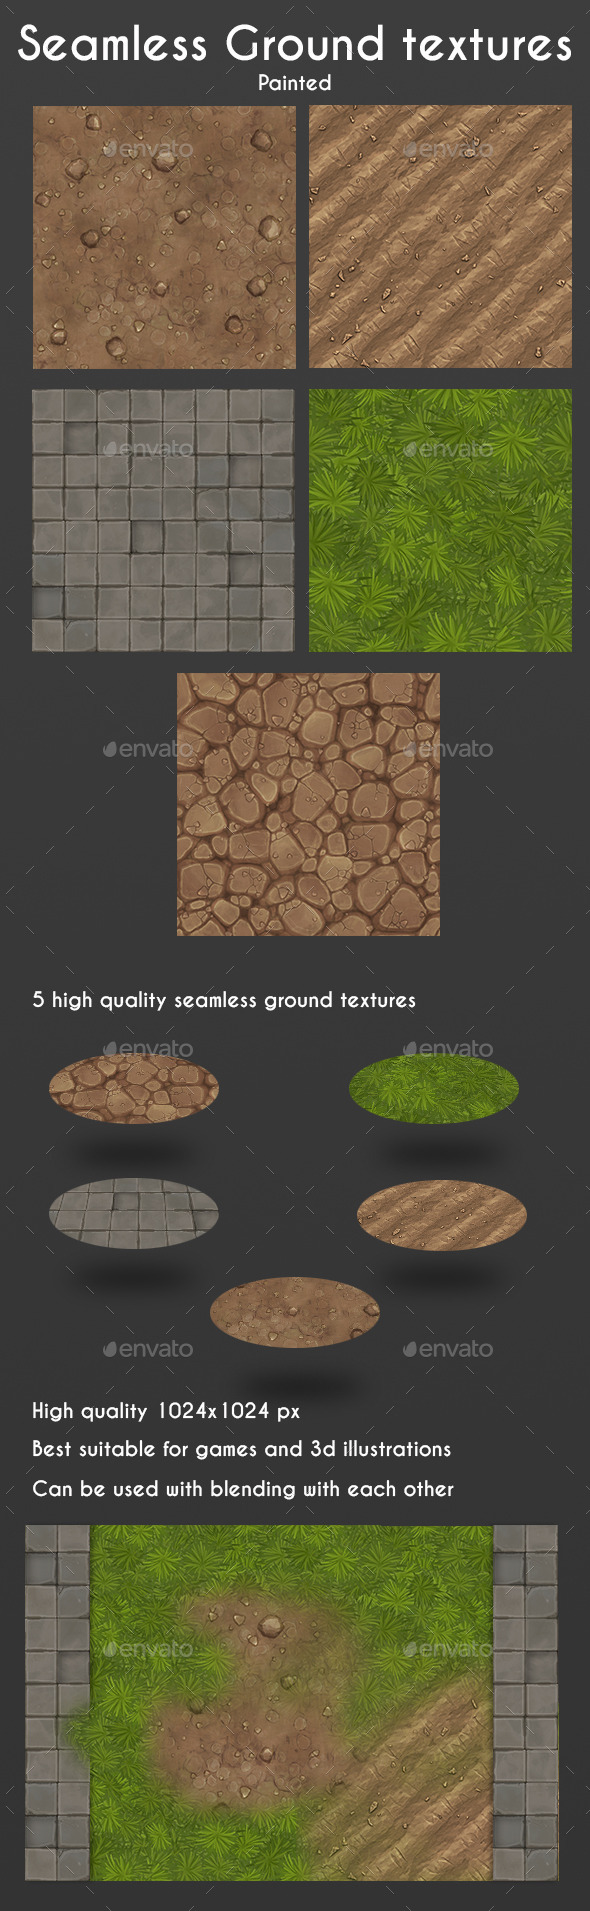 GraphicRiver Seamless Ground Textures 11166658